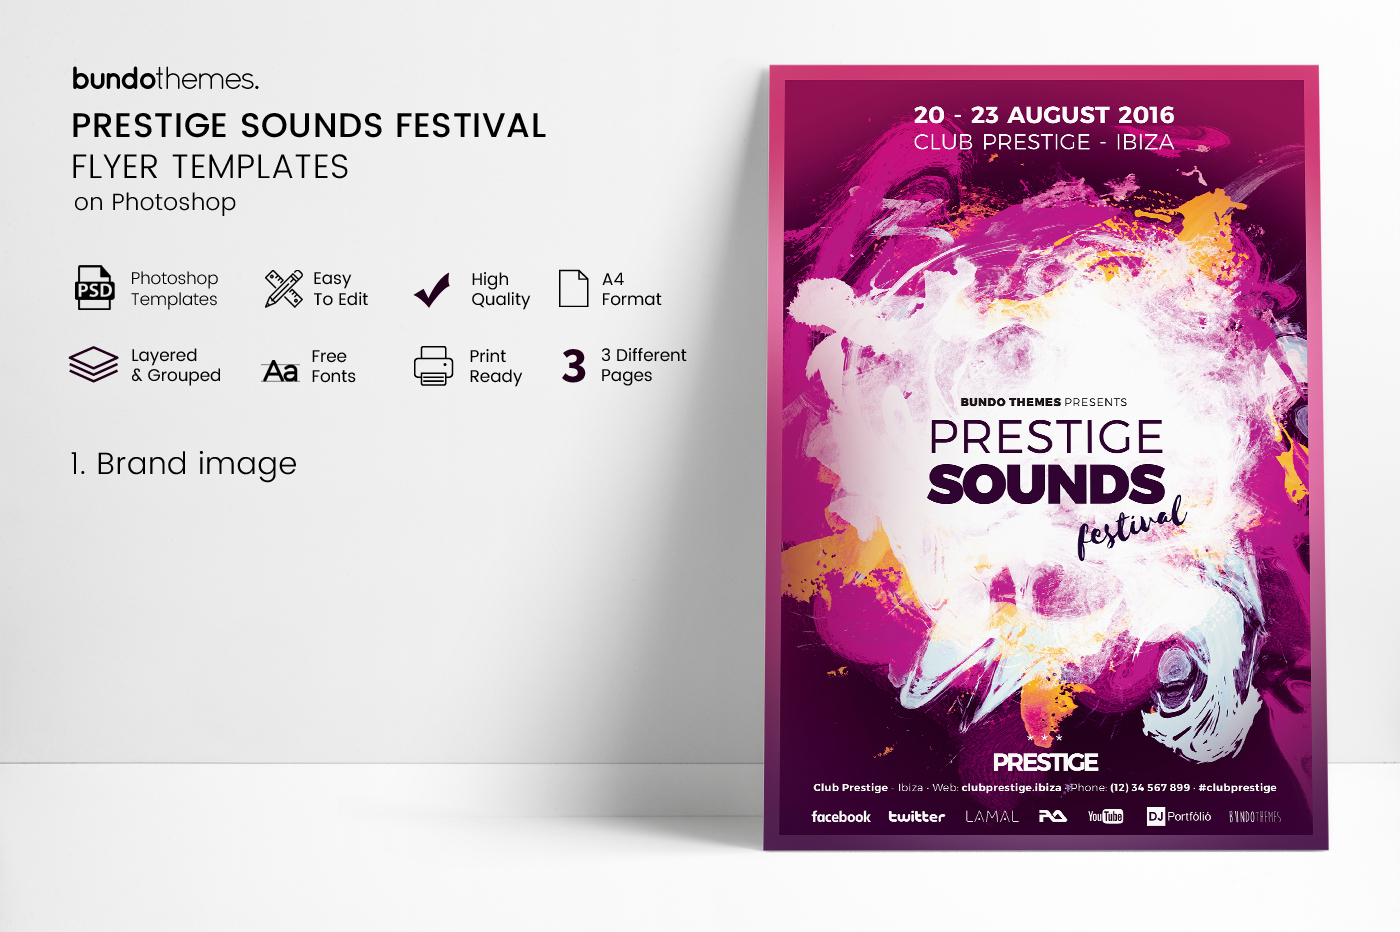 Prestige Sounds Festival Flyer Templates example image 4